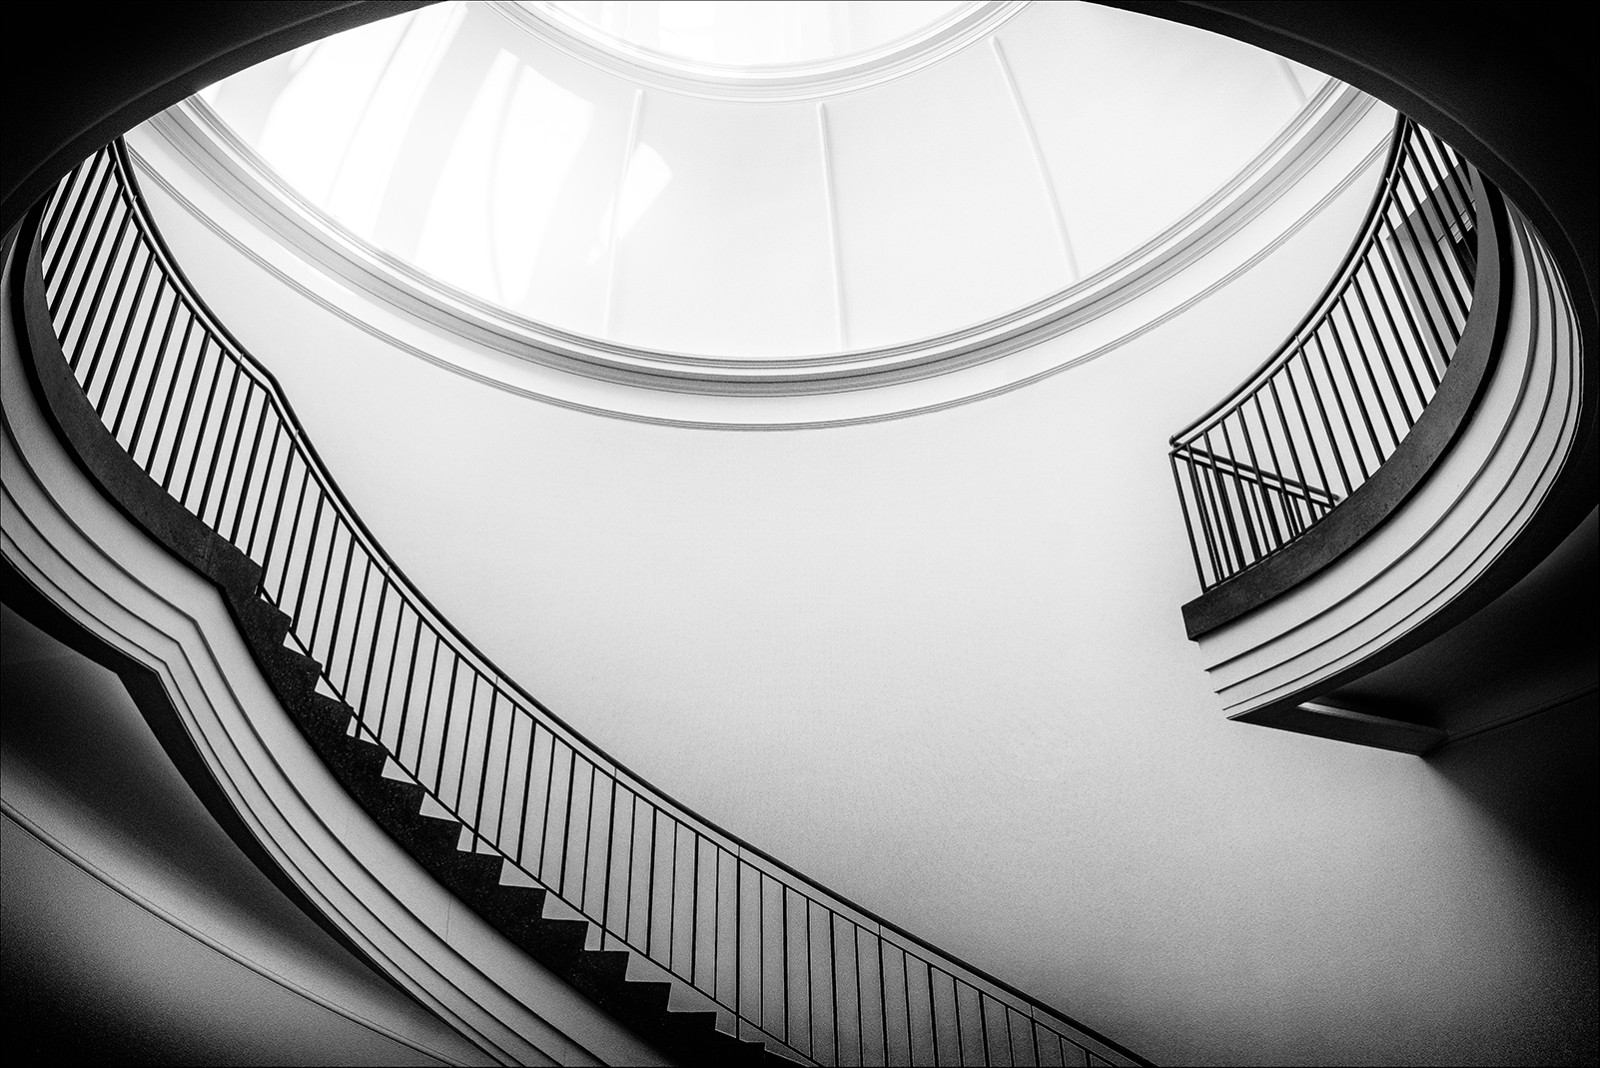 MONO - Museum Interior by Ray Magill (12 marks)